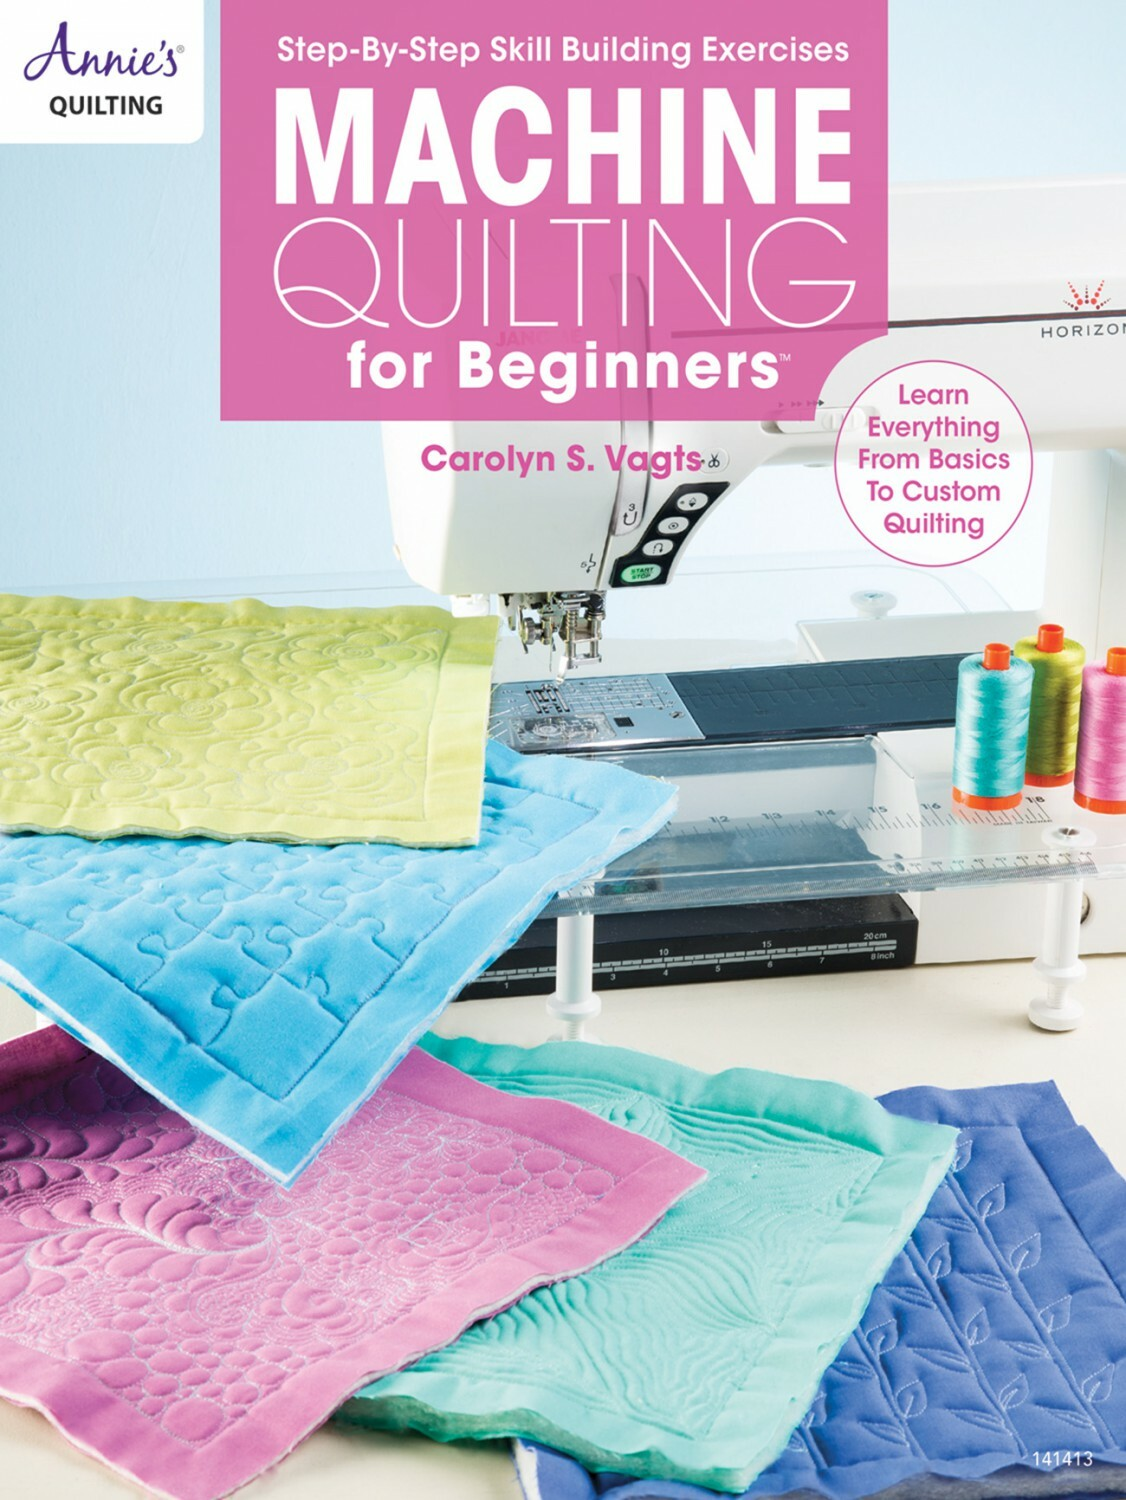 Machine Quilting for Beginners Book 56159